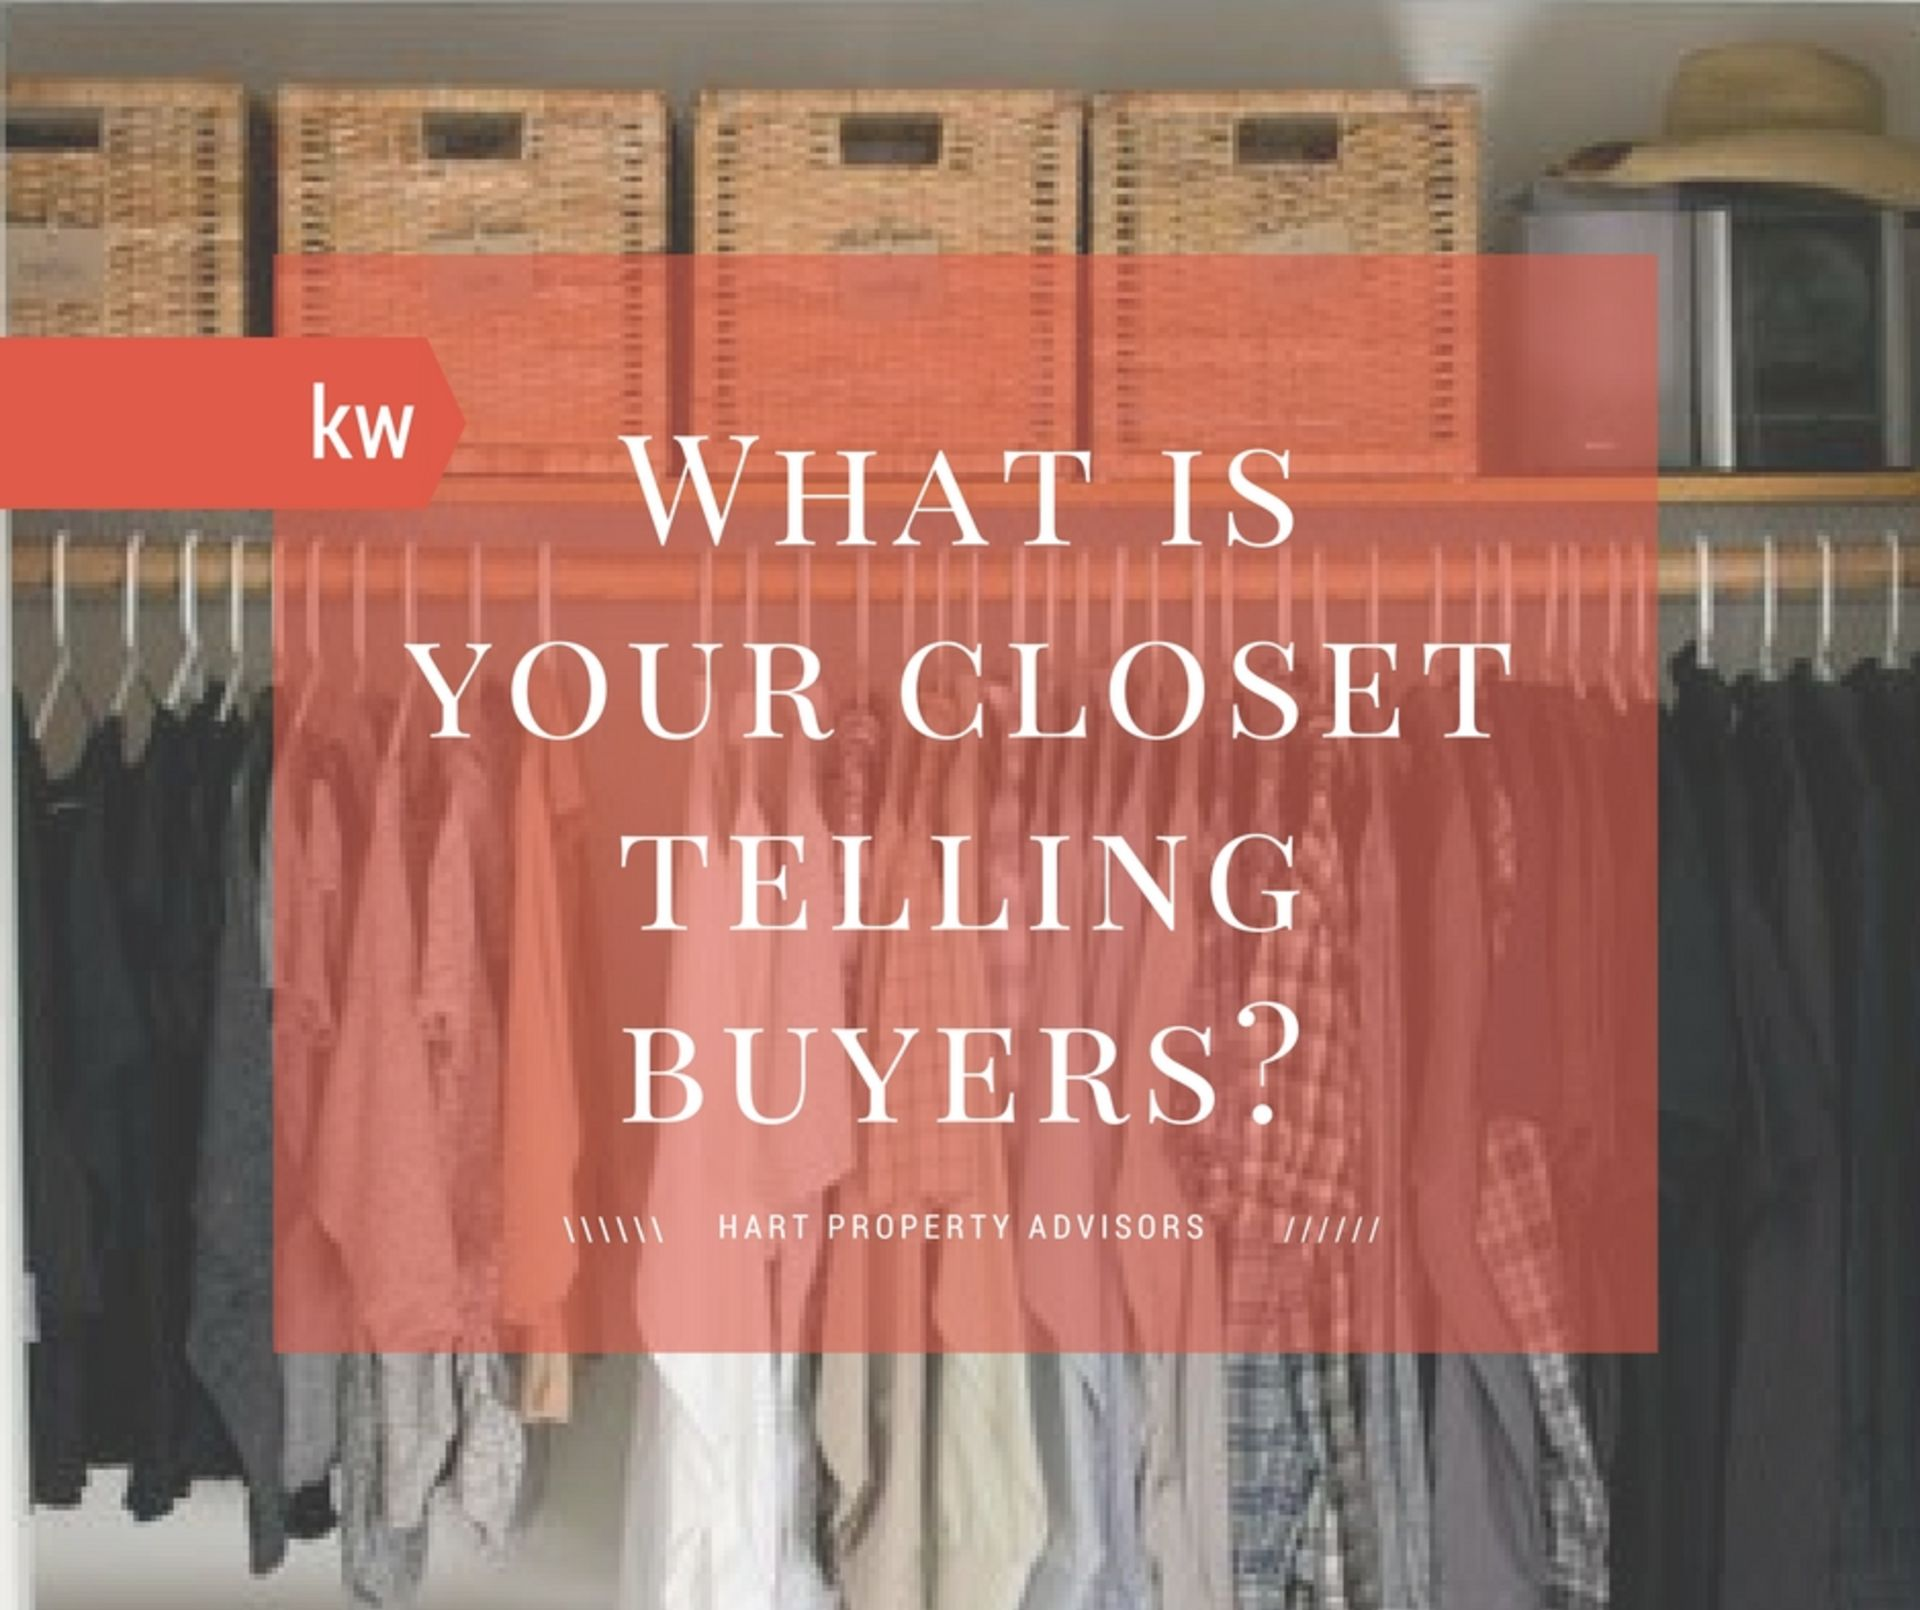 What is Your Closet Telling Buyers?